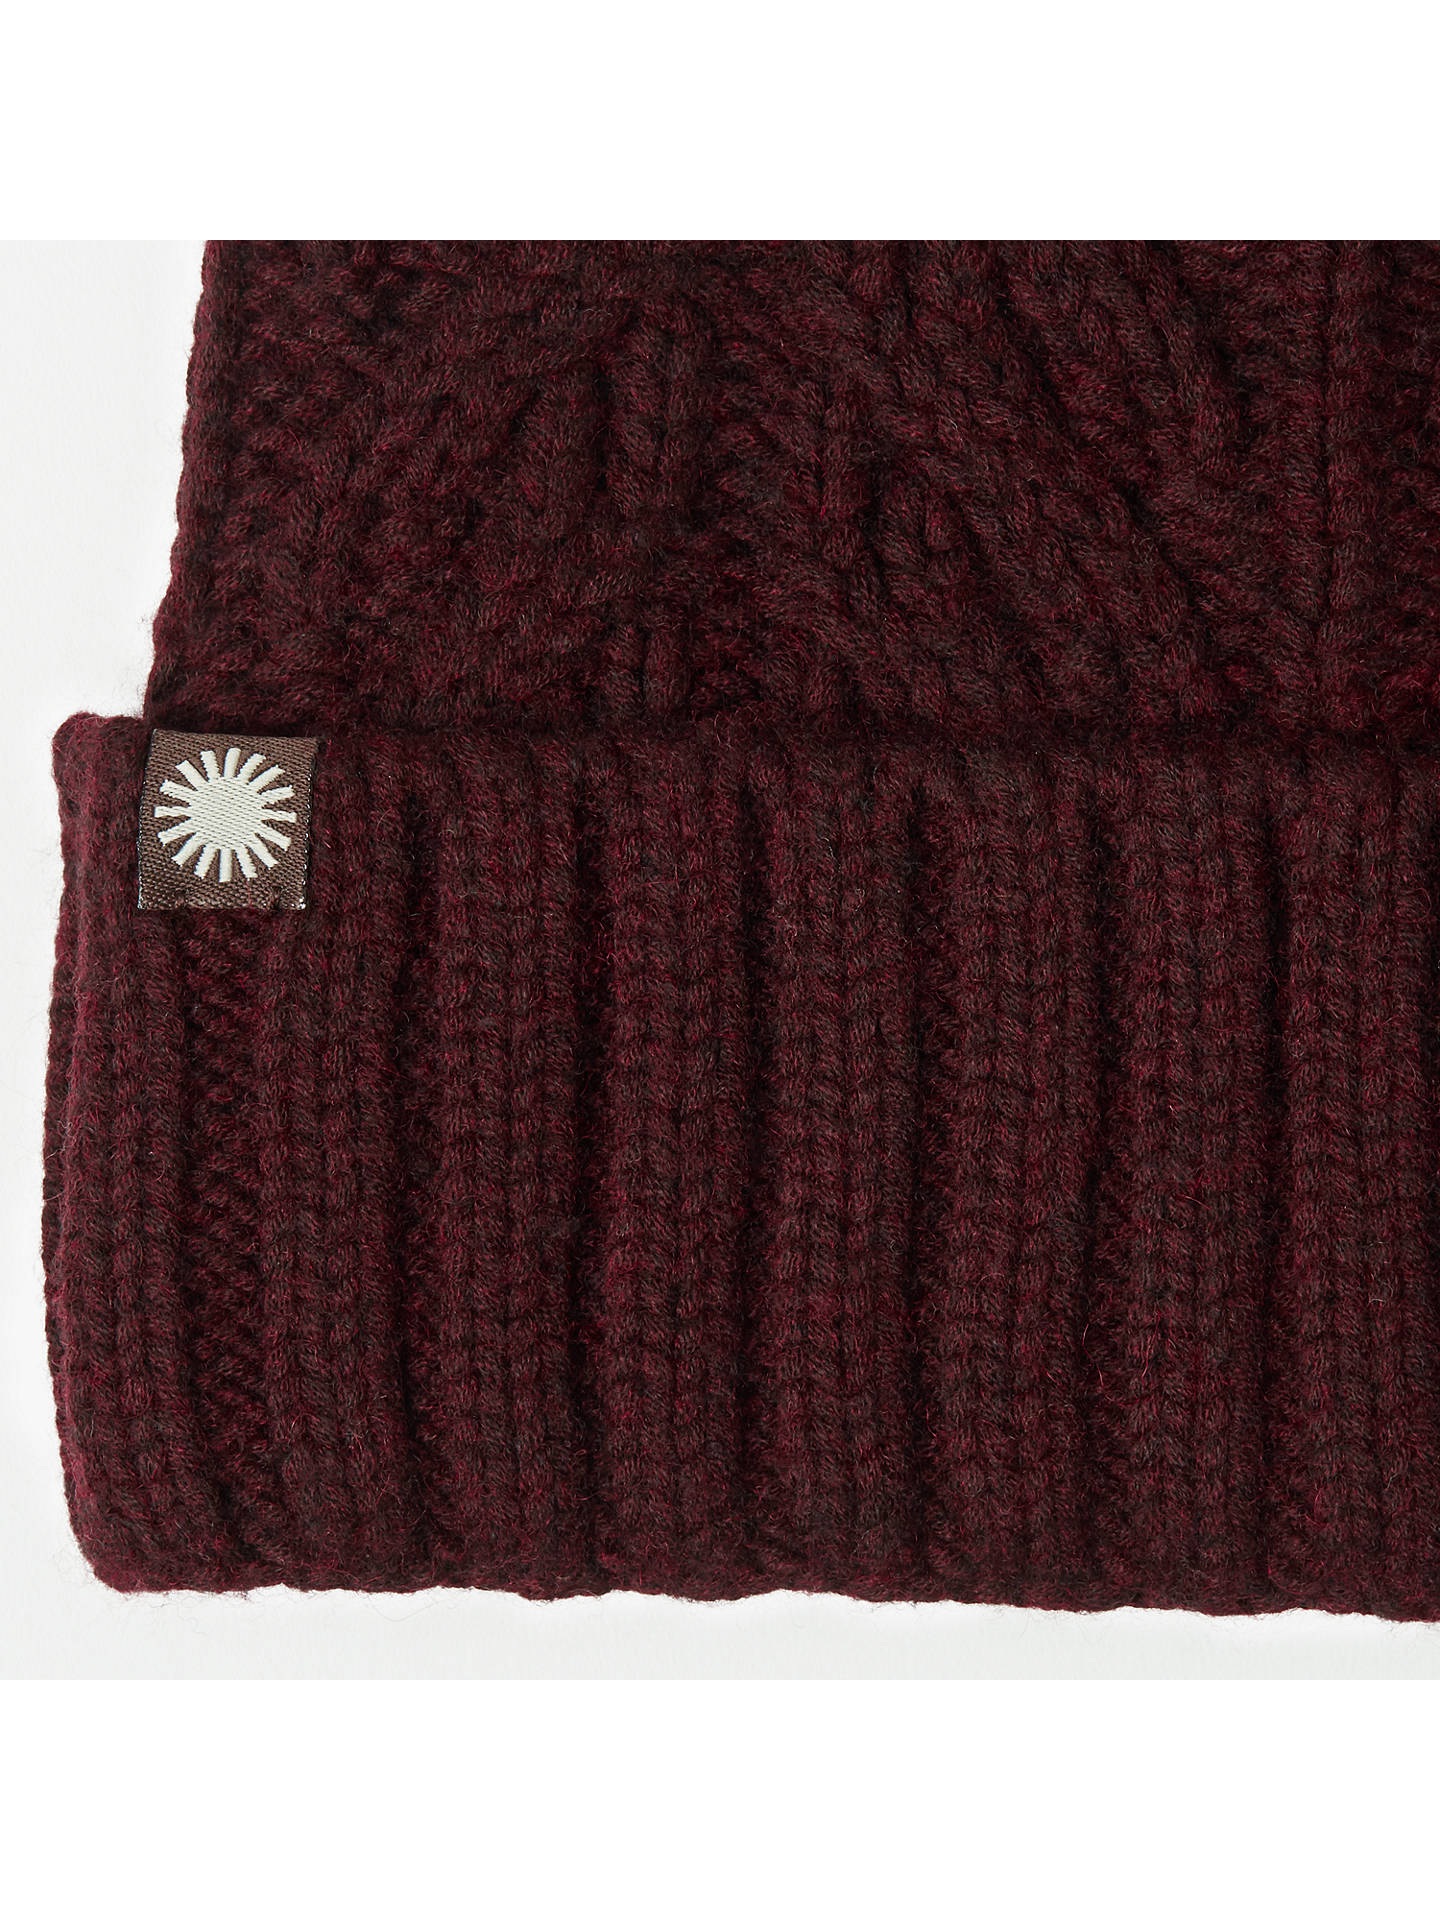 BuyUGG Textured Cuff Pom Pom Beanie Hat, Port Online at johnlewis.com